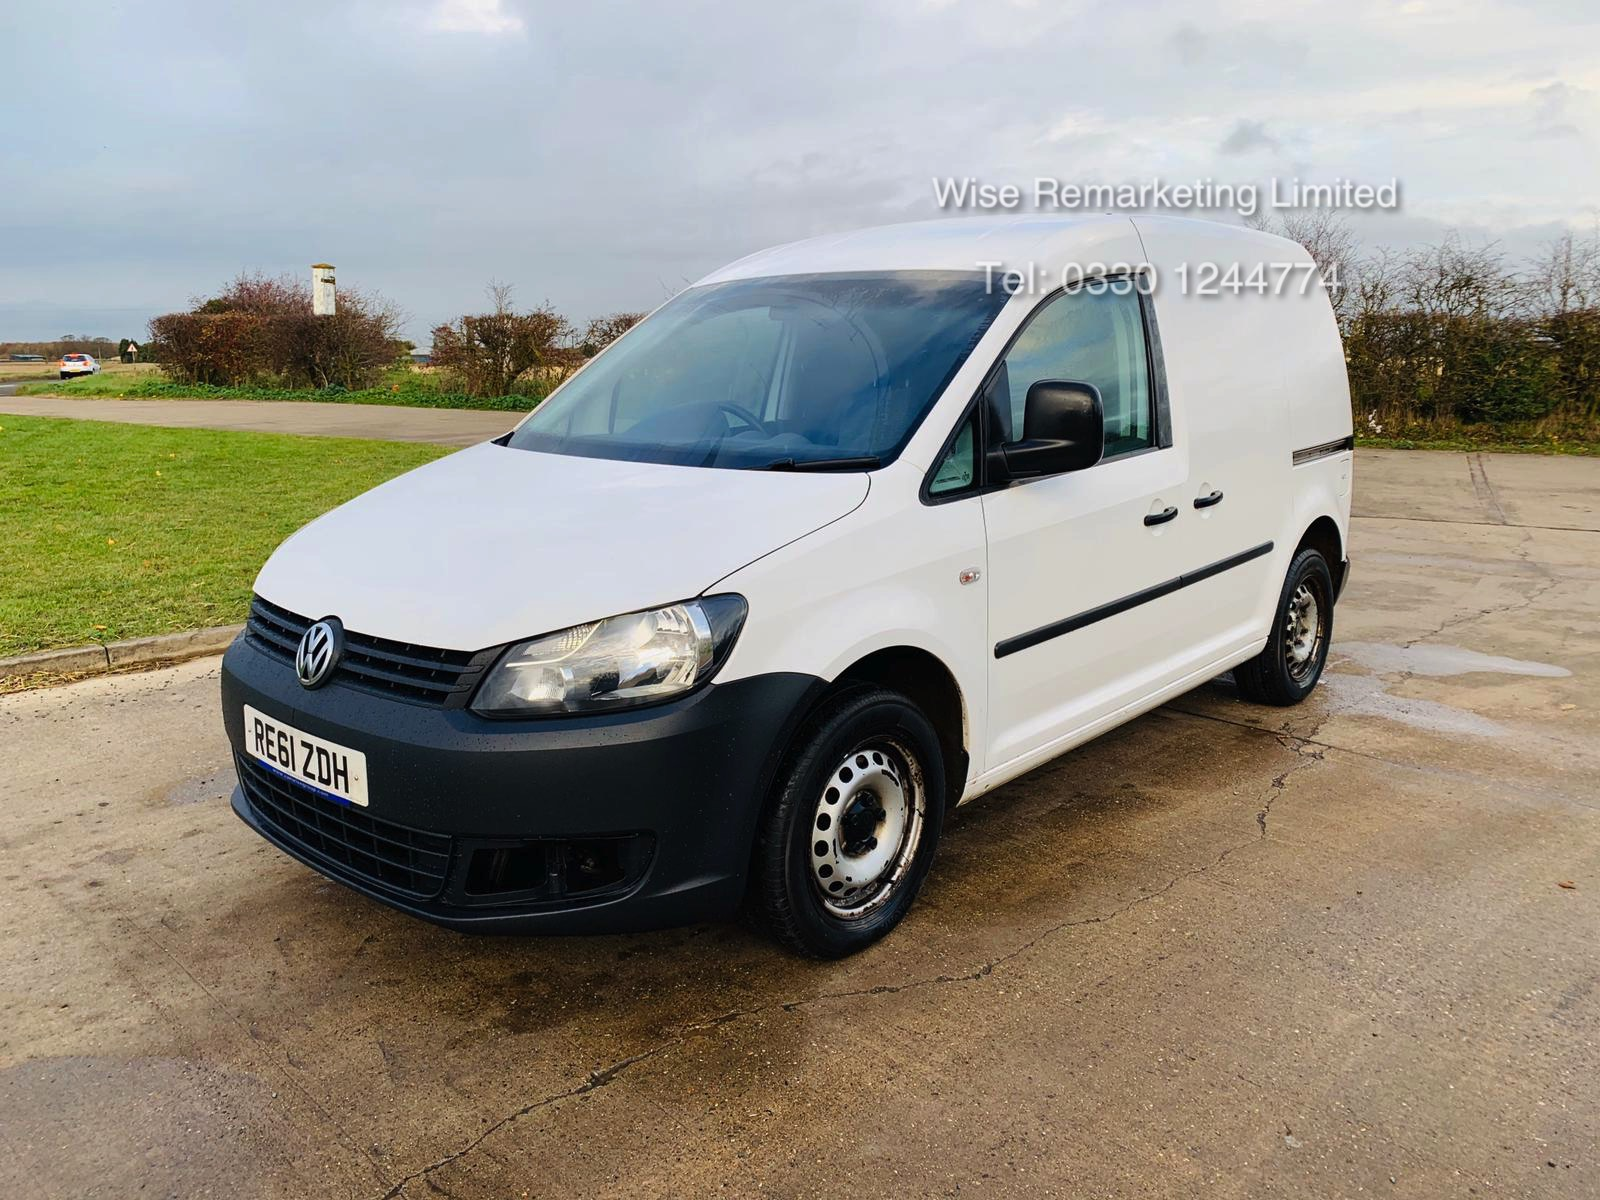 Volkswagen Caddy C20 1.6 TDI - 2012 Model - 1 Keeper From New - Side Loading Door - Ply Lined